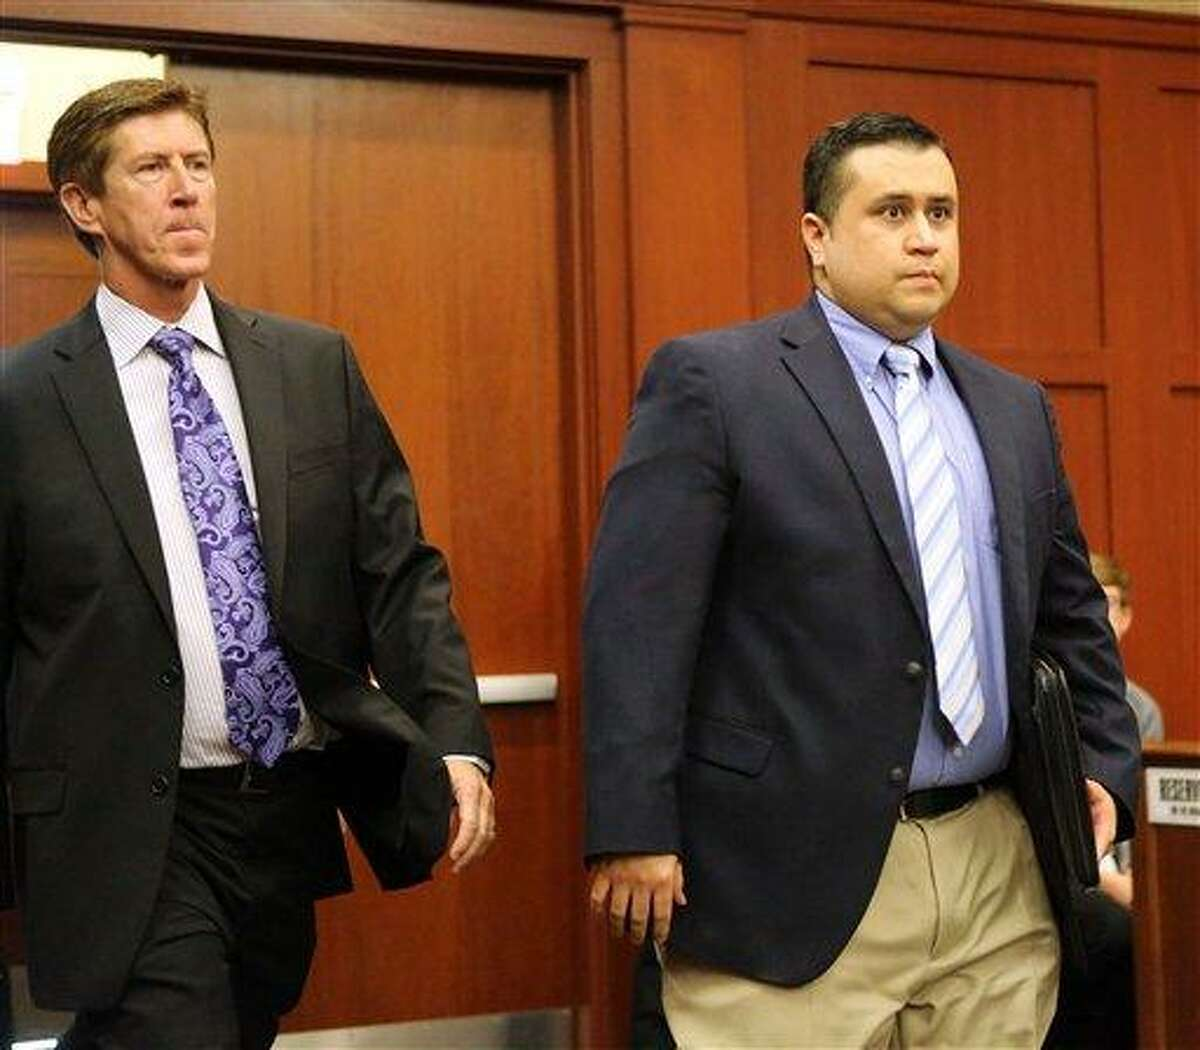 George Zimmerman, right, arrives with his lead counsel, Mark O'Mara, for a hearing in Seminole circuit court, in Sanford, Fla., Tuesday, Feb. 5, 2013. (AP Photo/Orlando Sentinel, Joe Burbank, Pool)